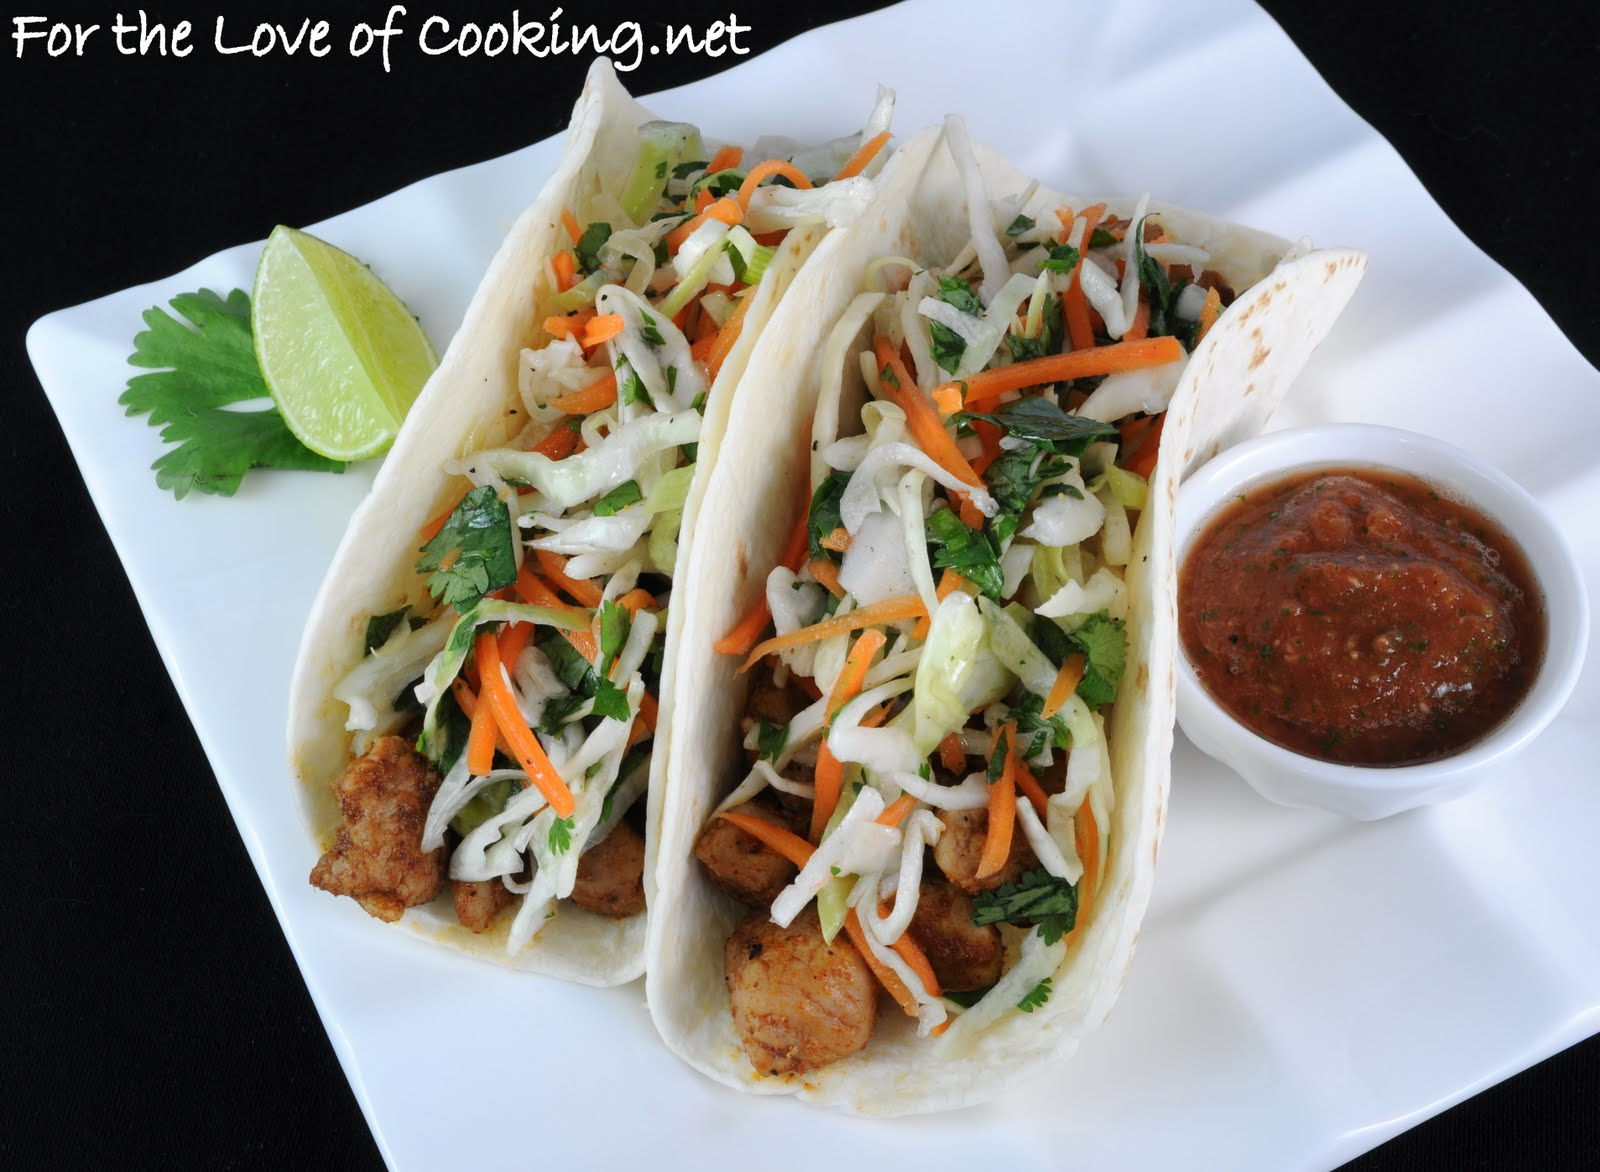 Pork Tenderloin Tacos with Tangy Slaw | For the Love of ...